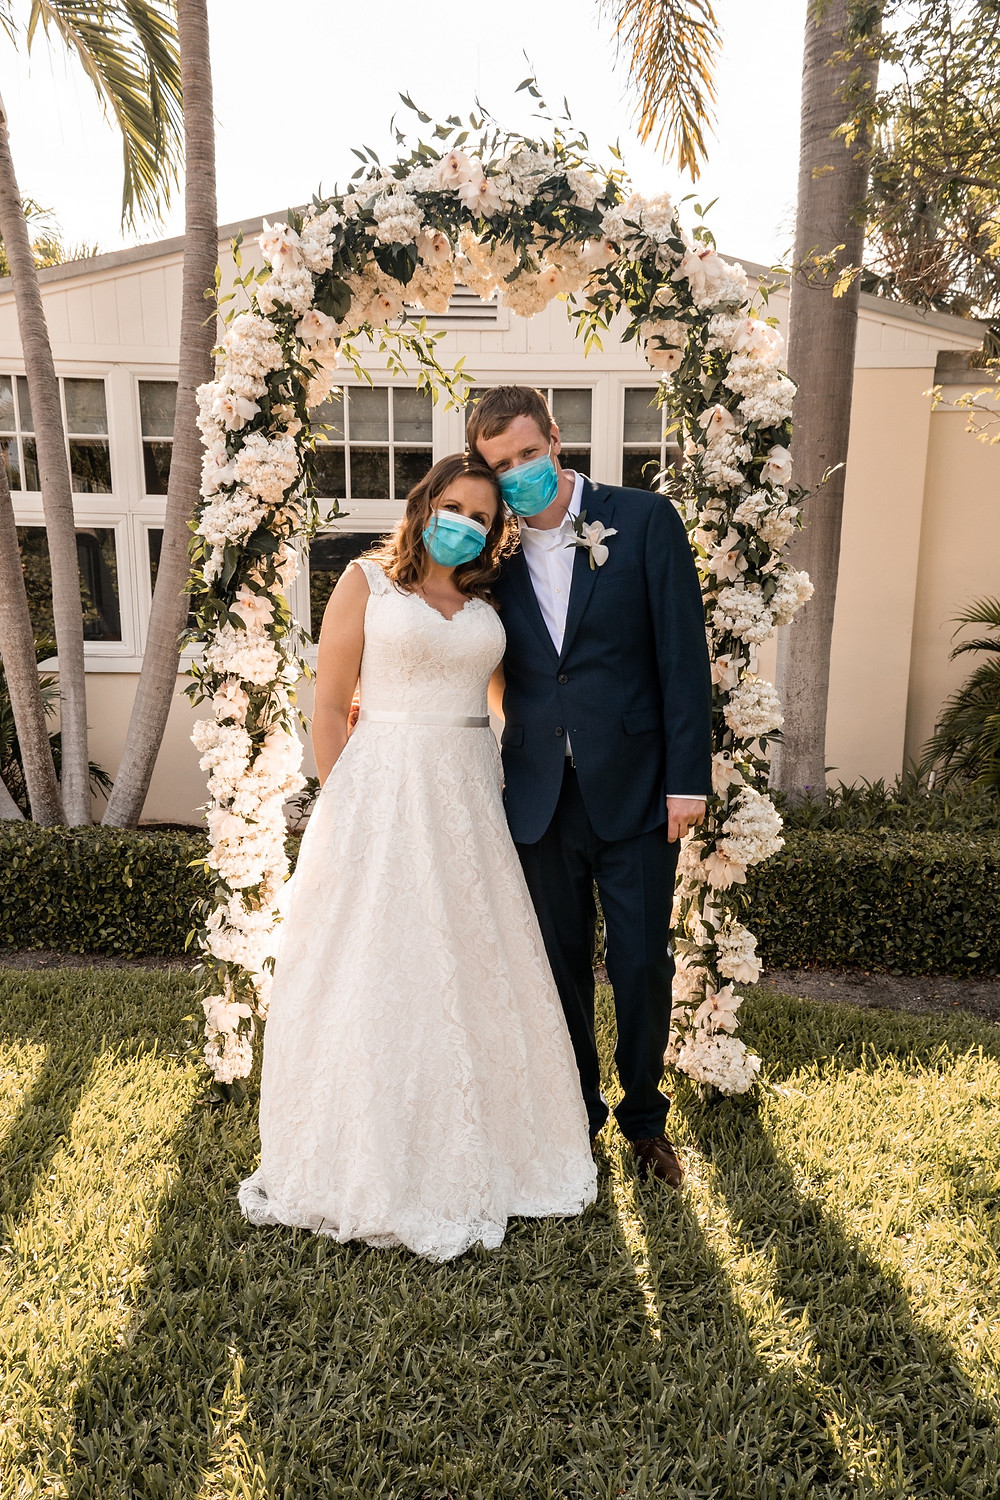 Bride and groom in masks at wedding ceremony